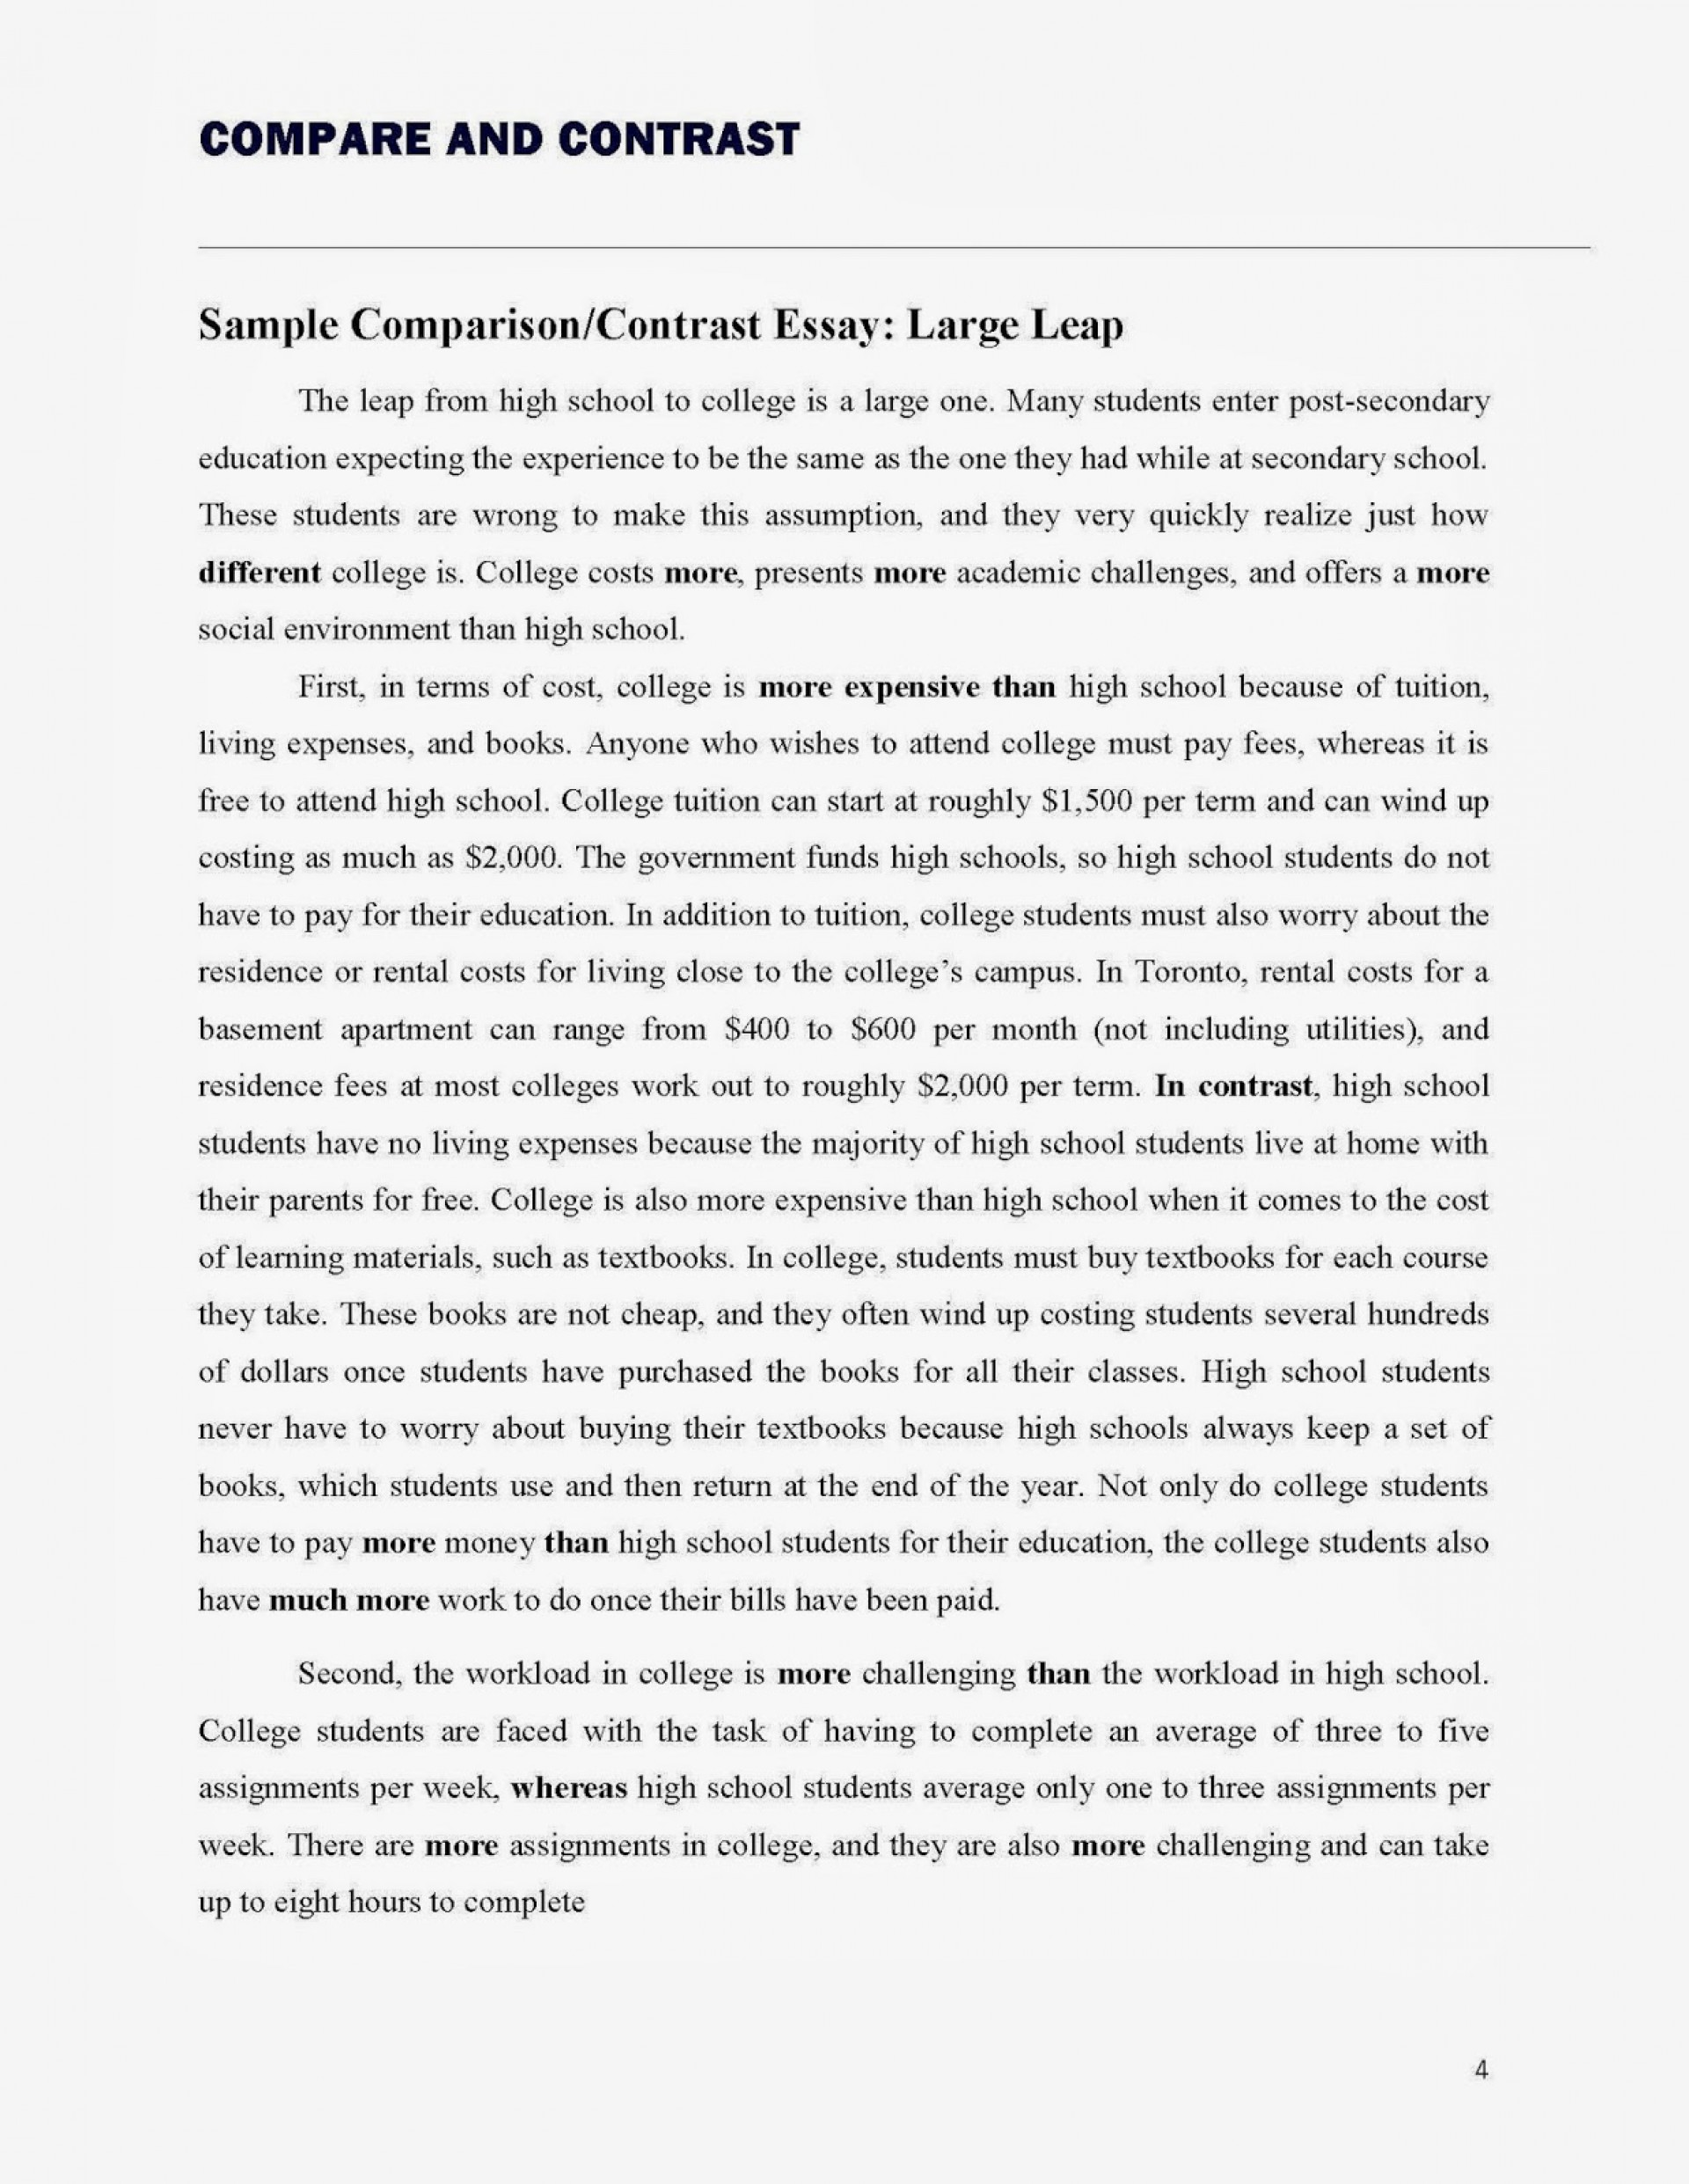 009 Compare20and20contrast20essay Page 4 Good Compare And Contrast Essay Topics Exceptional For Elementary Students In The Medical Field 1920